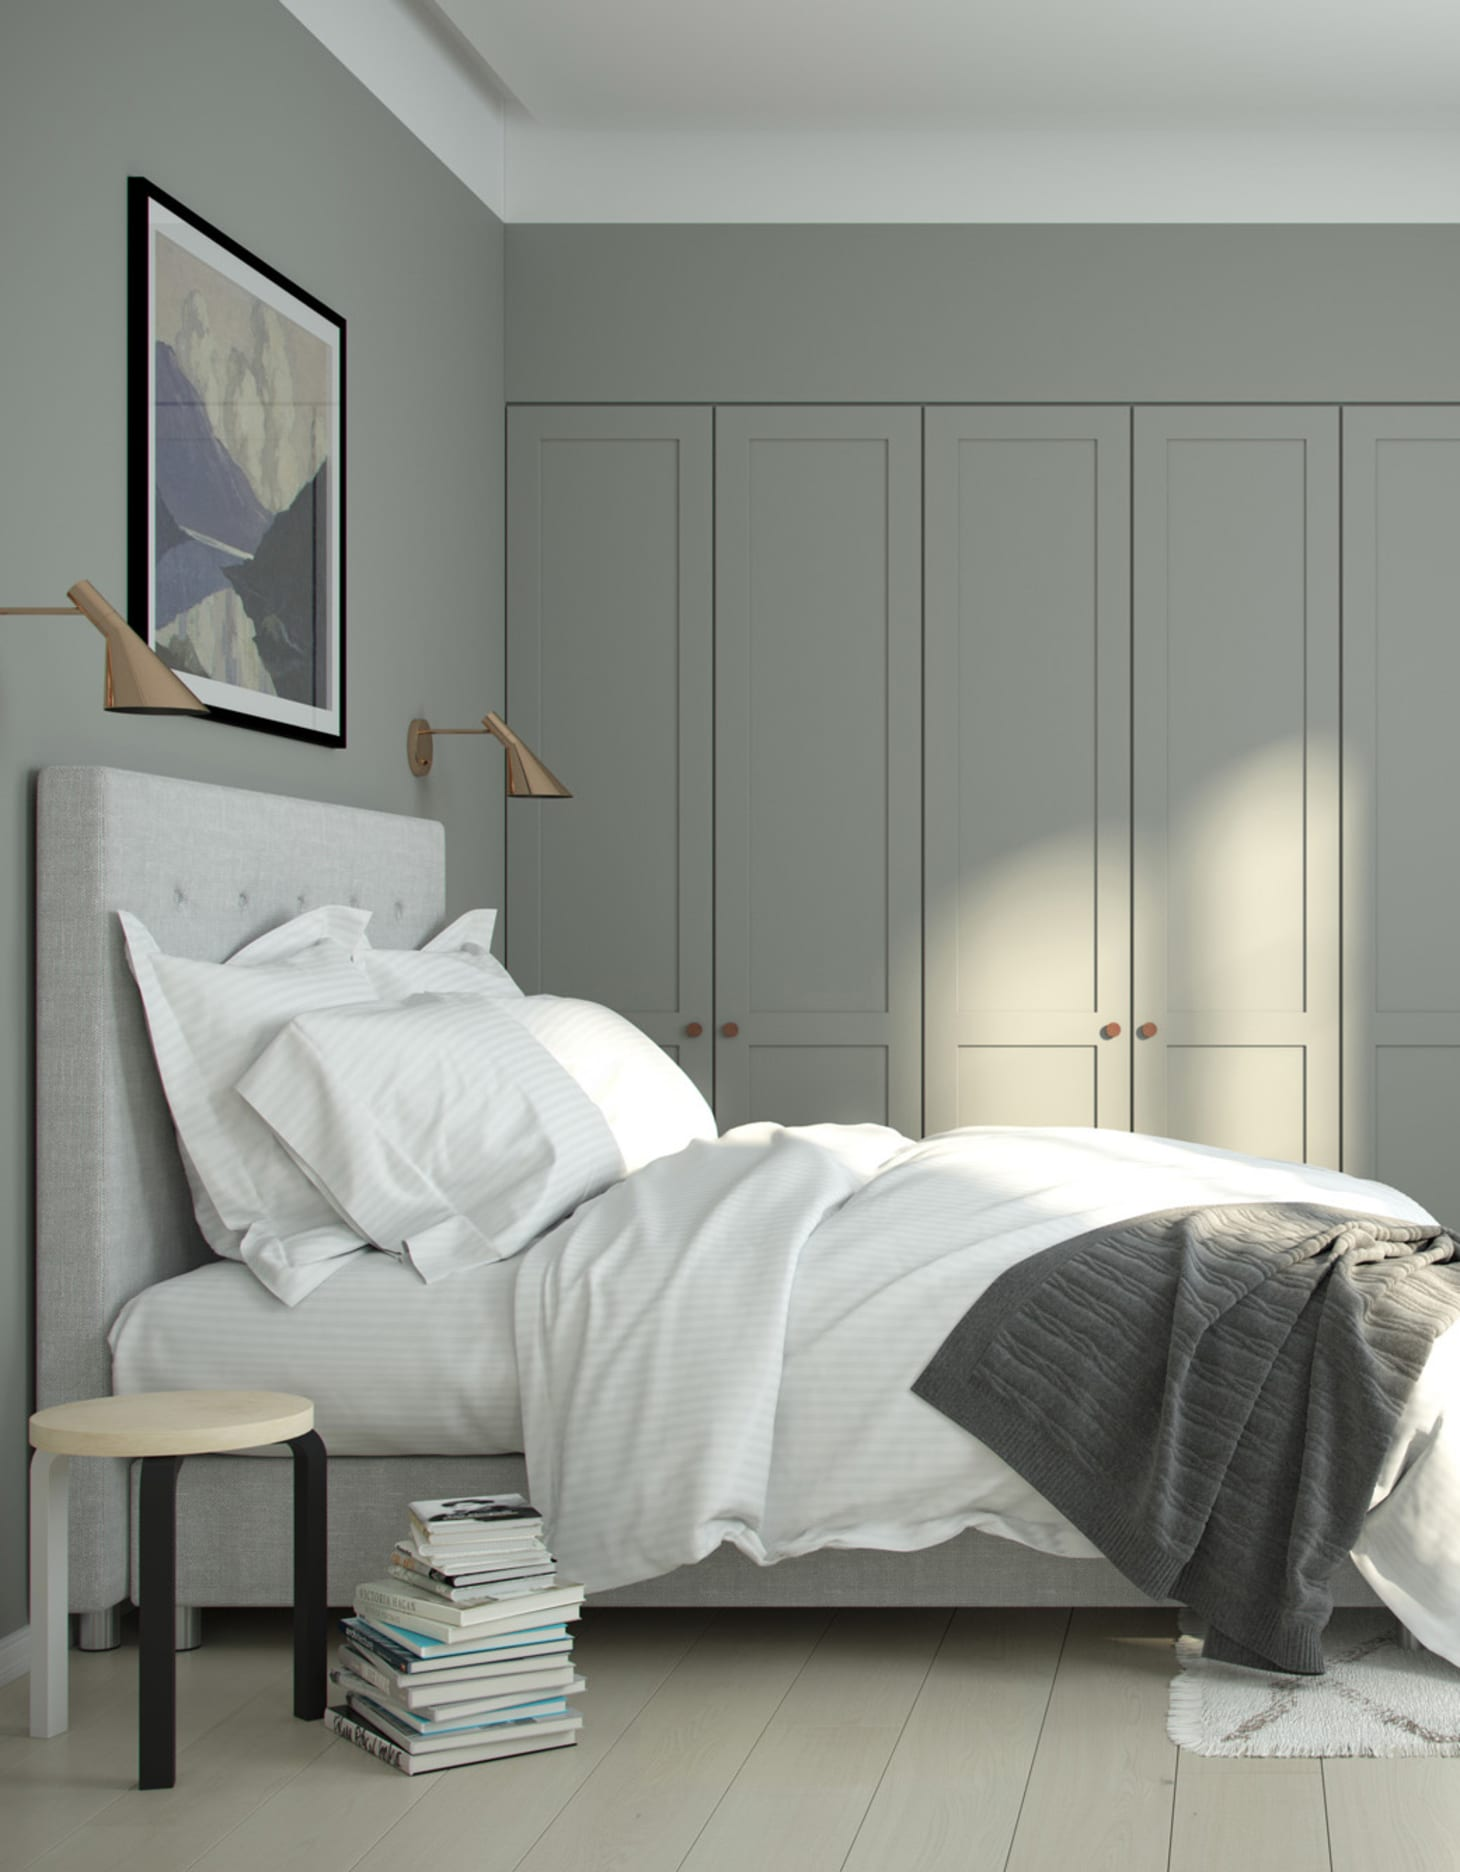 Ikea Pax Wardrobe Hacks That Look Seamless And Built In